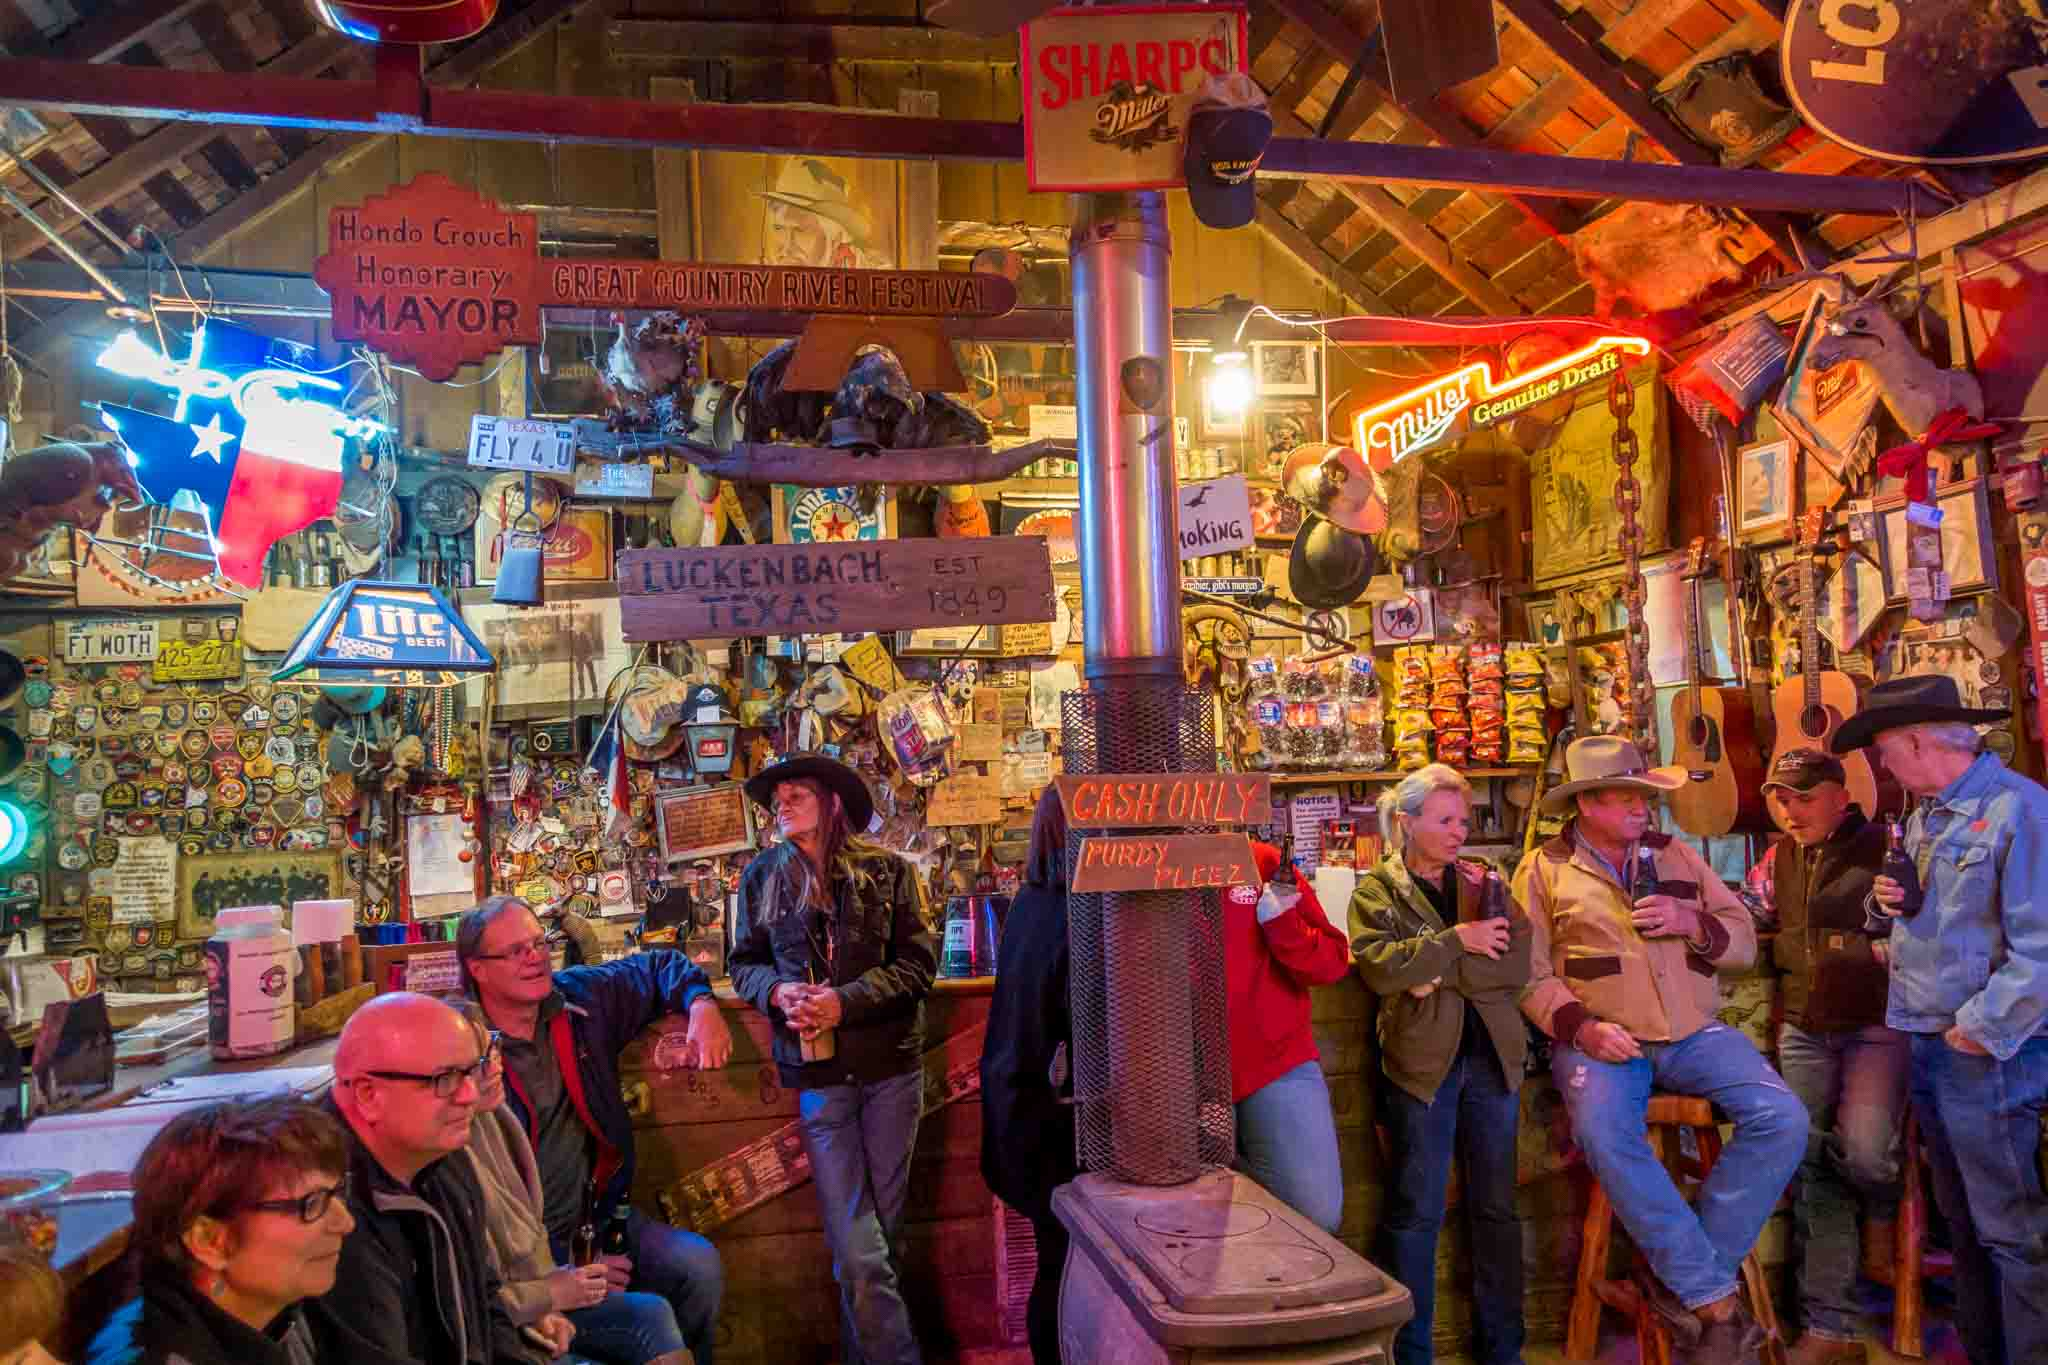 People in a bar filled with signs and memorabilia on the walls